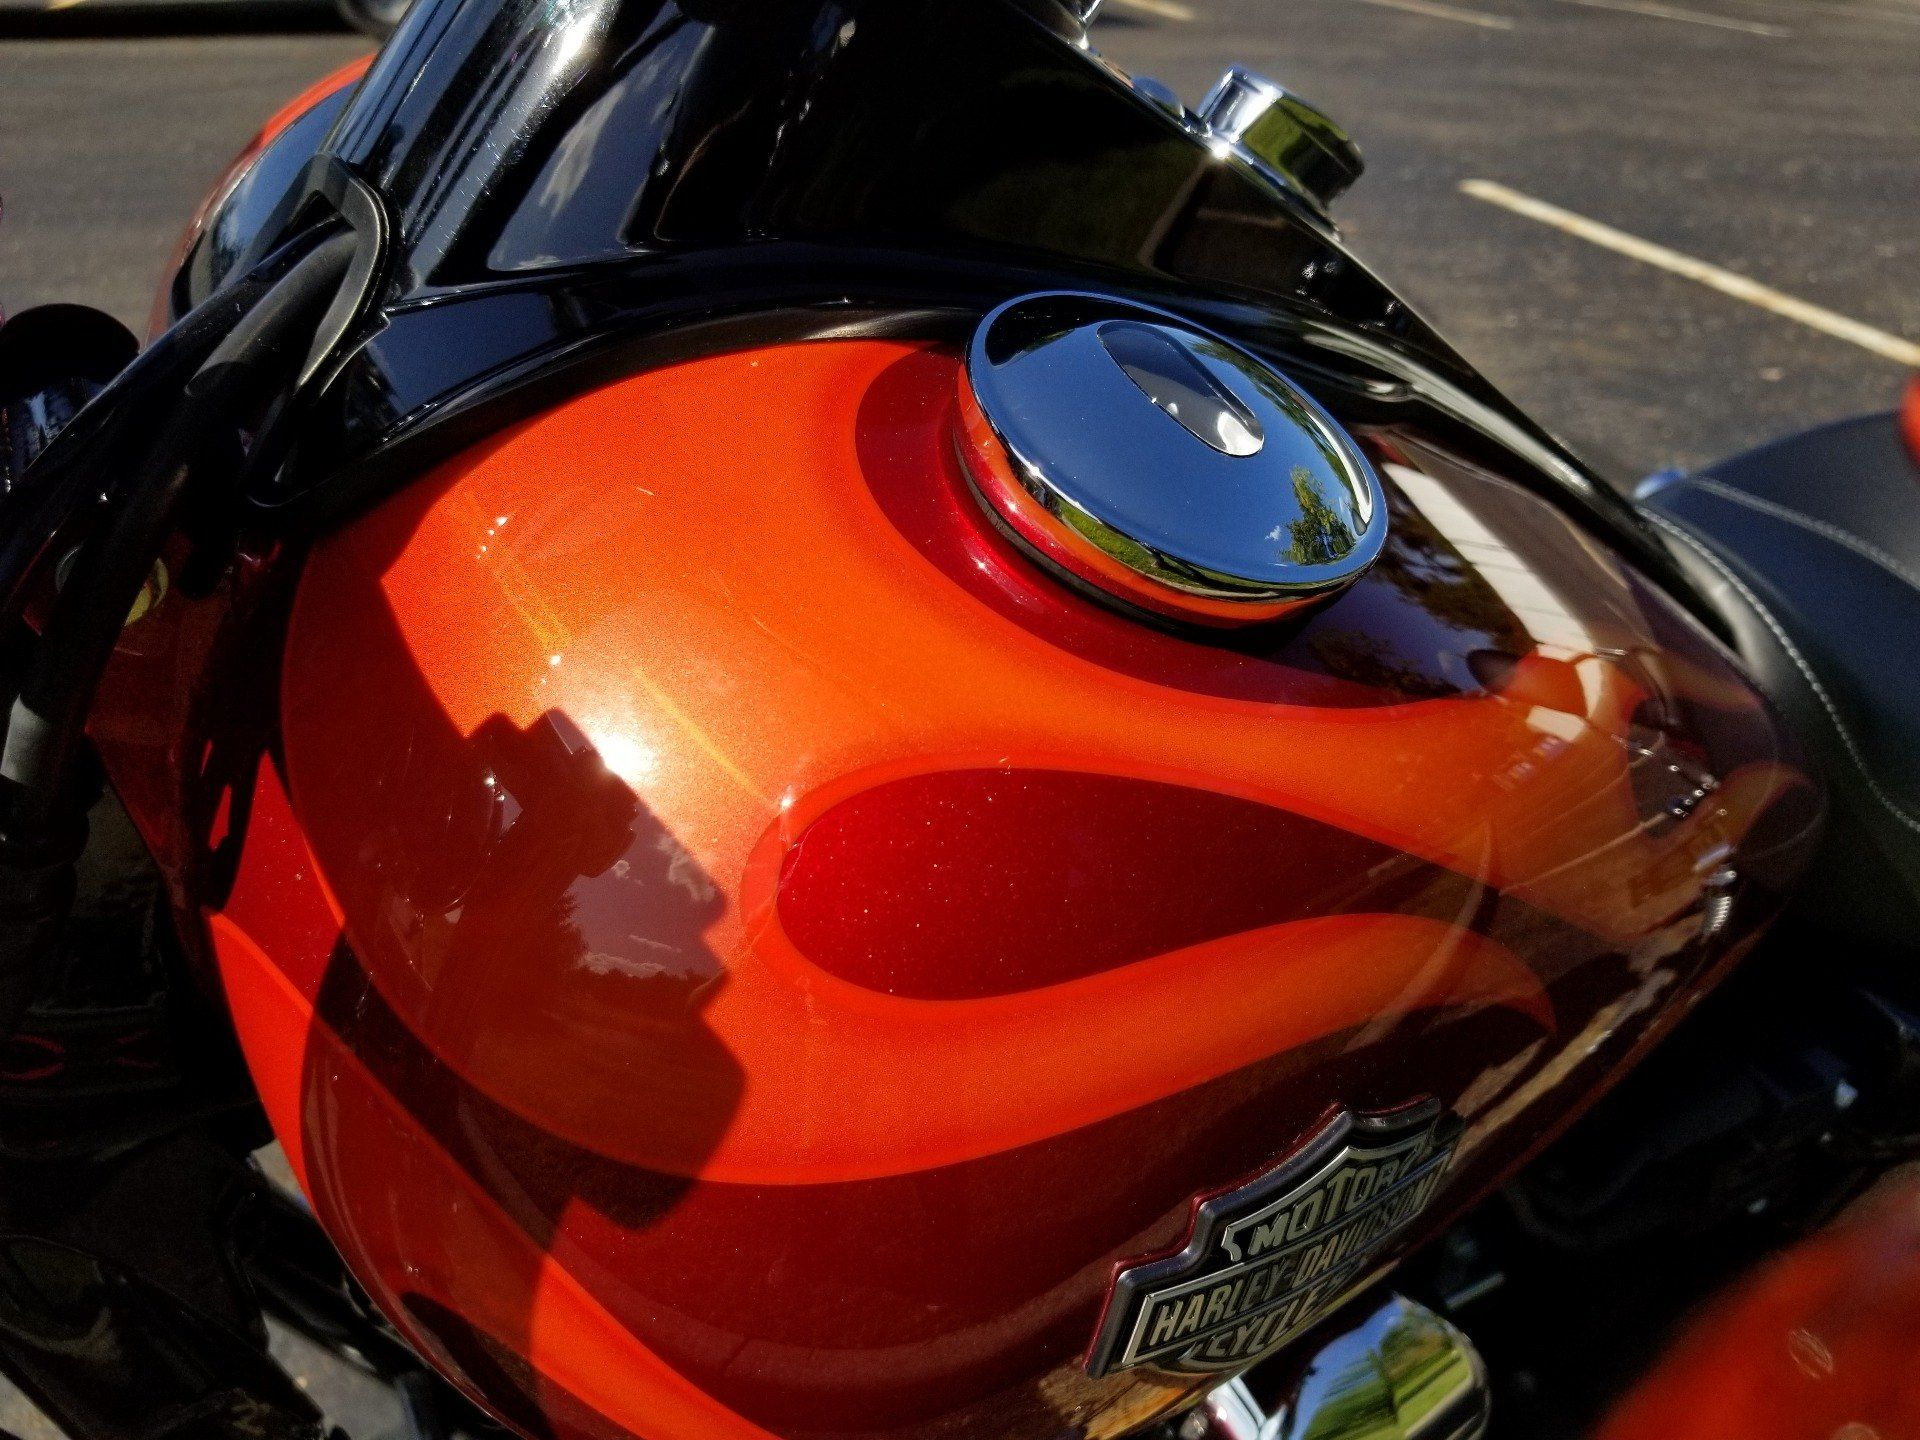 2013 Harley-Davidson Dyna® Wide Glide® in Sunbury, Ohio - Photo 8